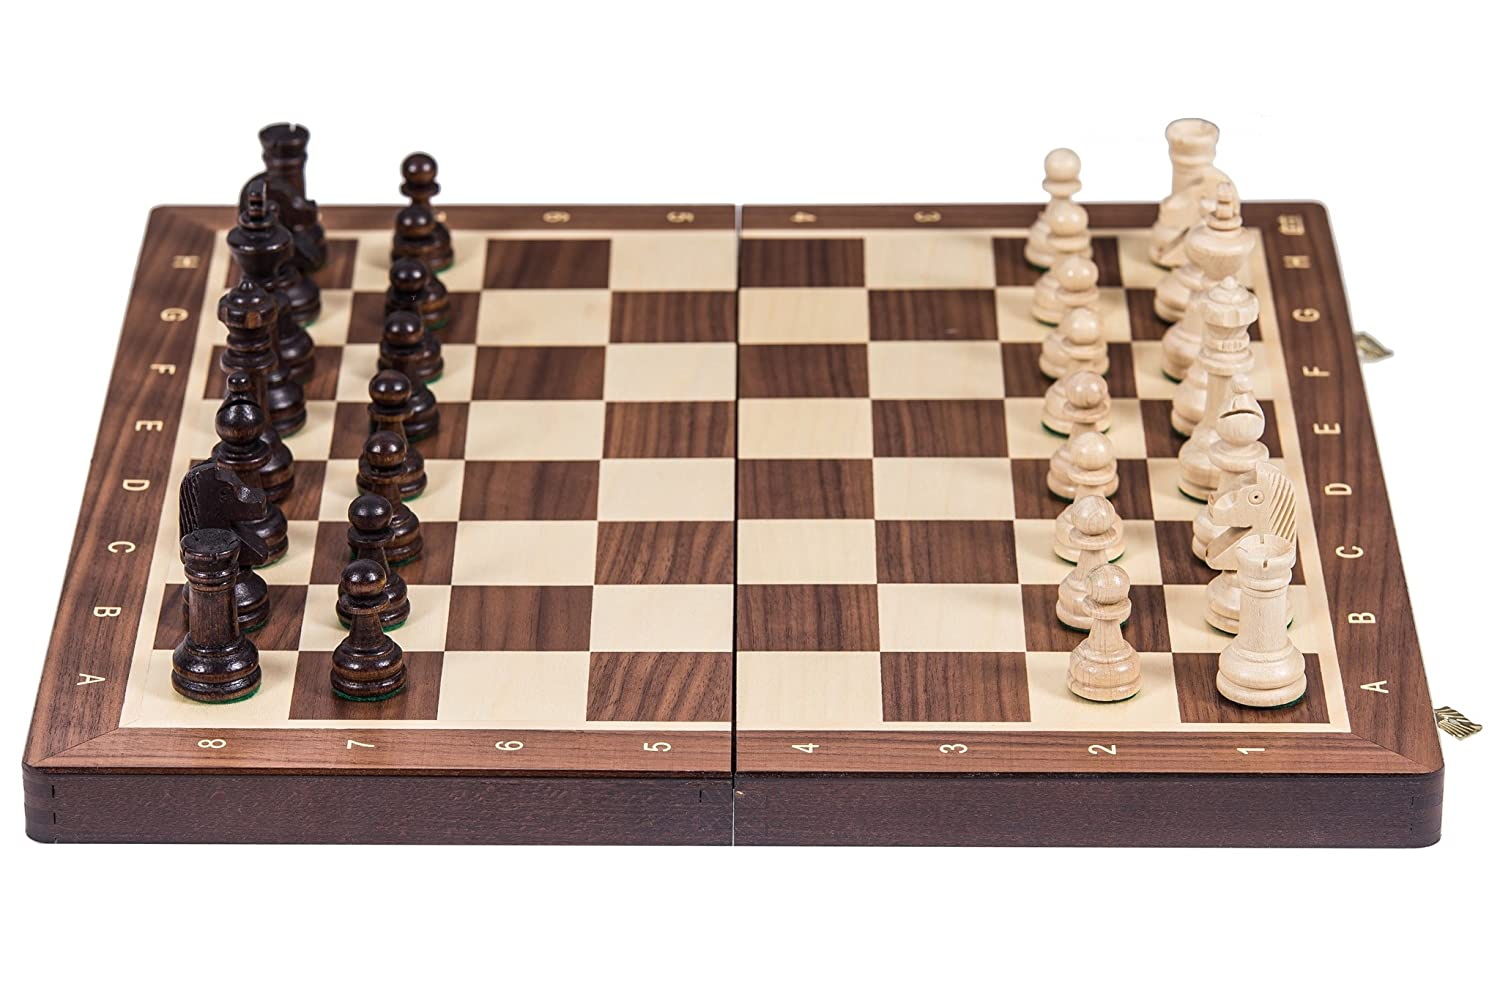 SQUARE  Wooden Chess Tournament No. 4  WALNUT  Chessboard & Chess Pieces